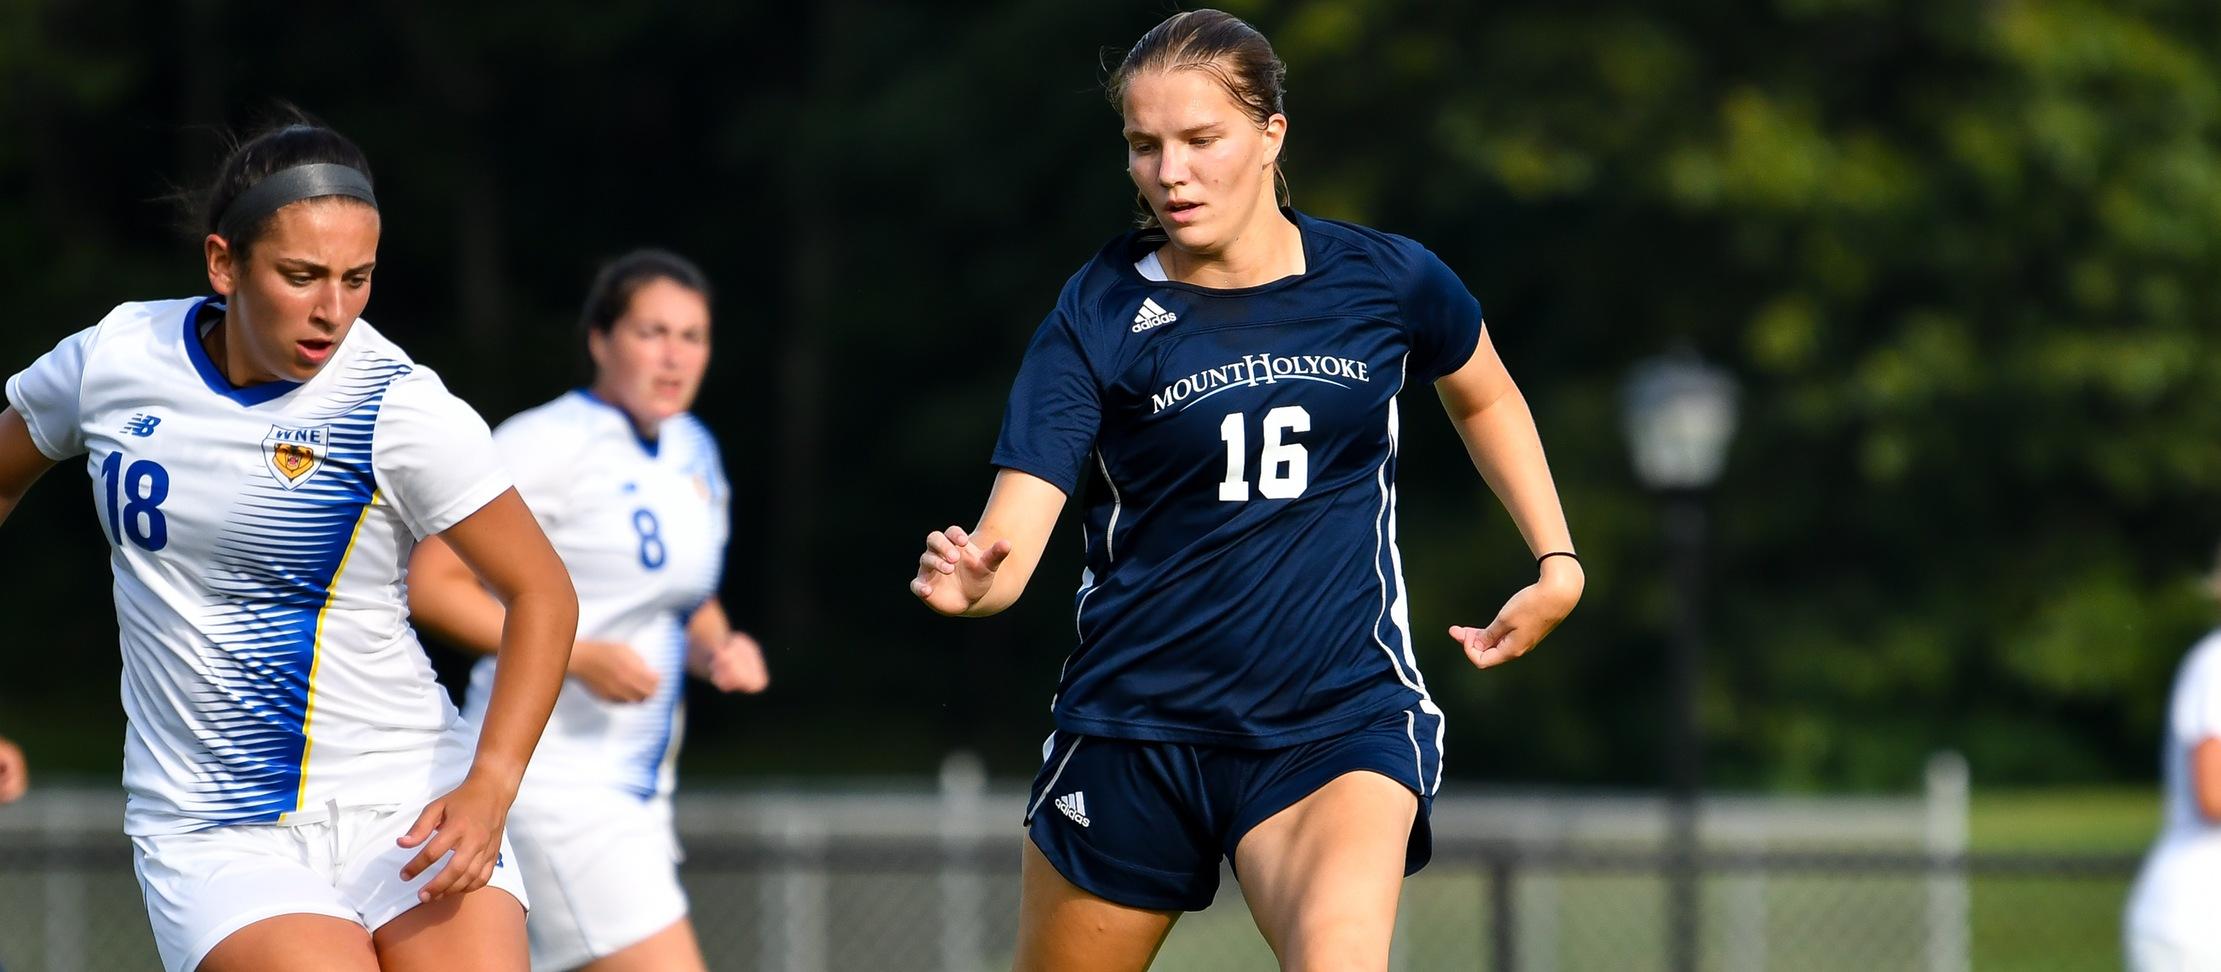 Soccer Falls to Springfield, 4-0, in NEWMAC Play